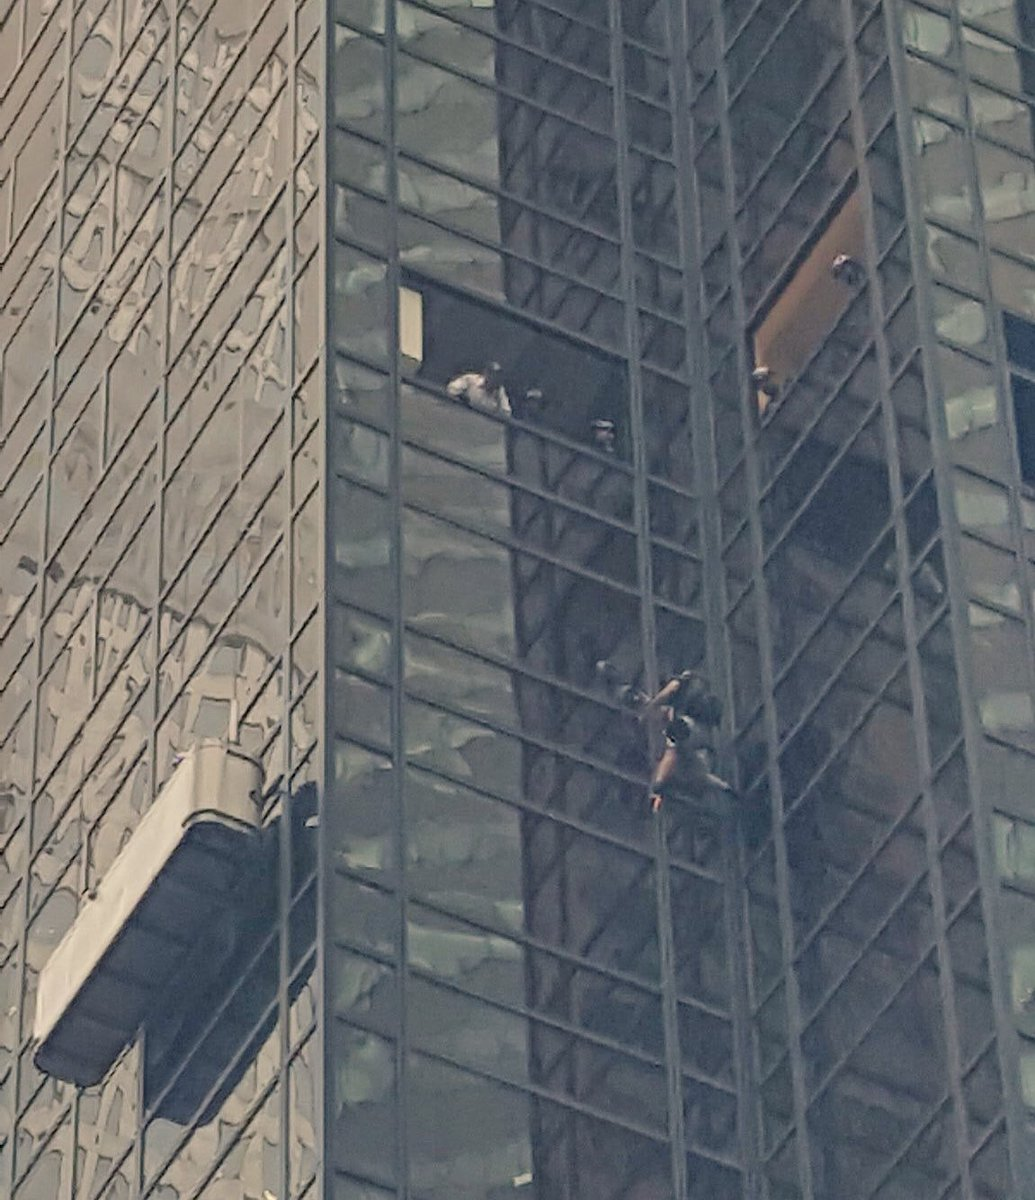 Virginia man scales Trump Tower before police grab him